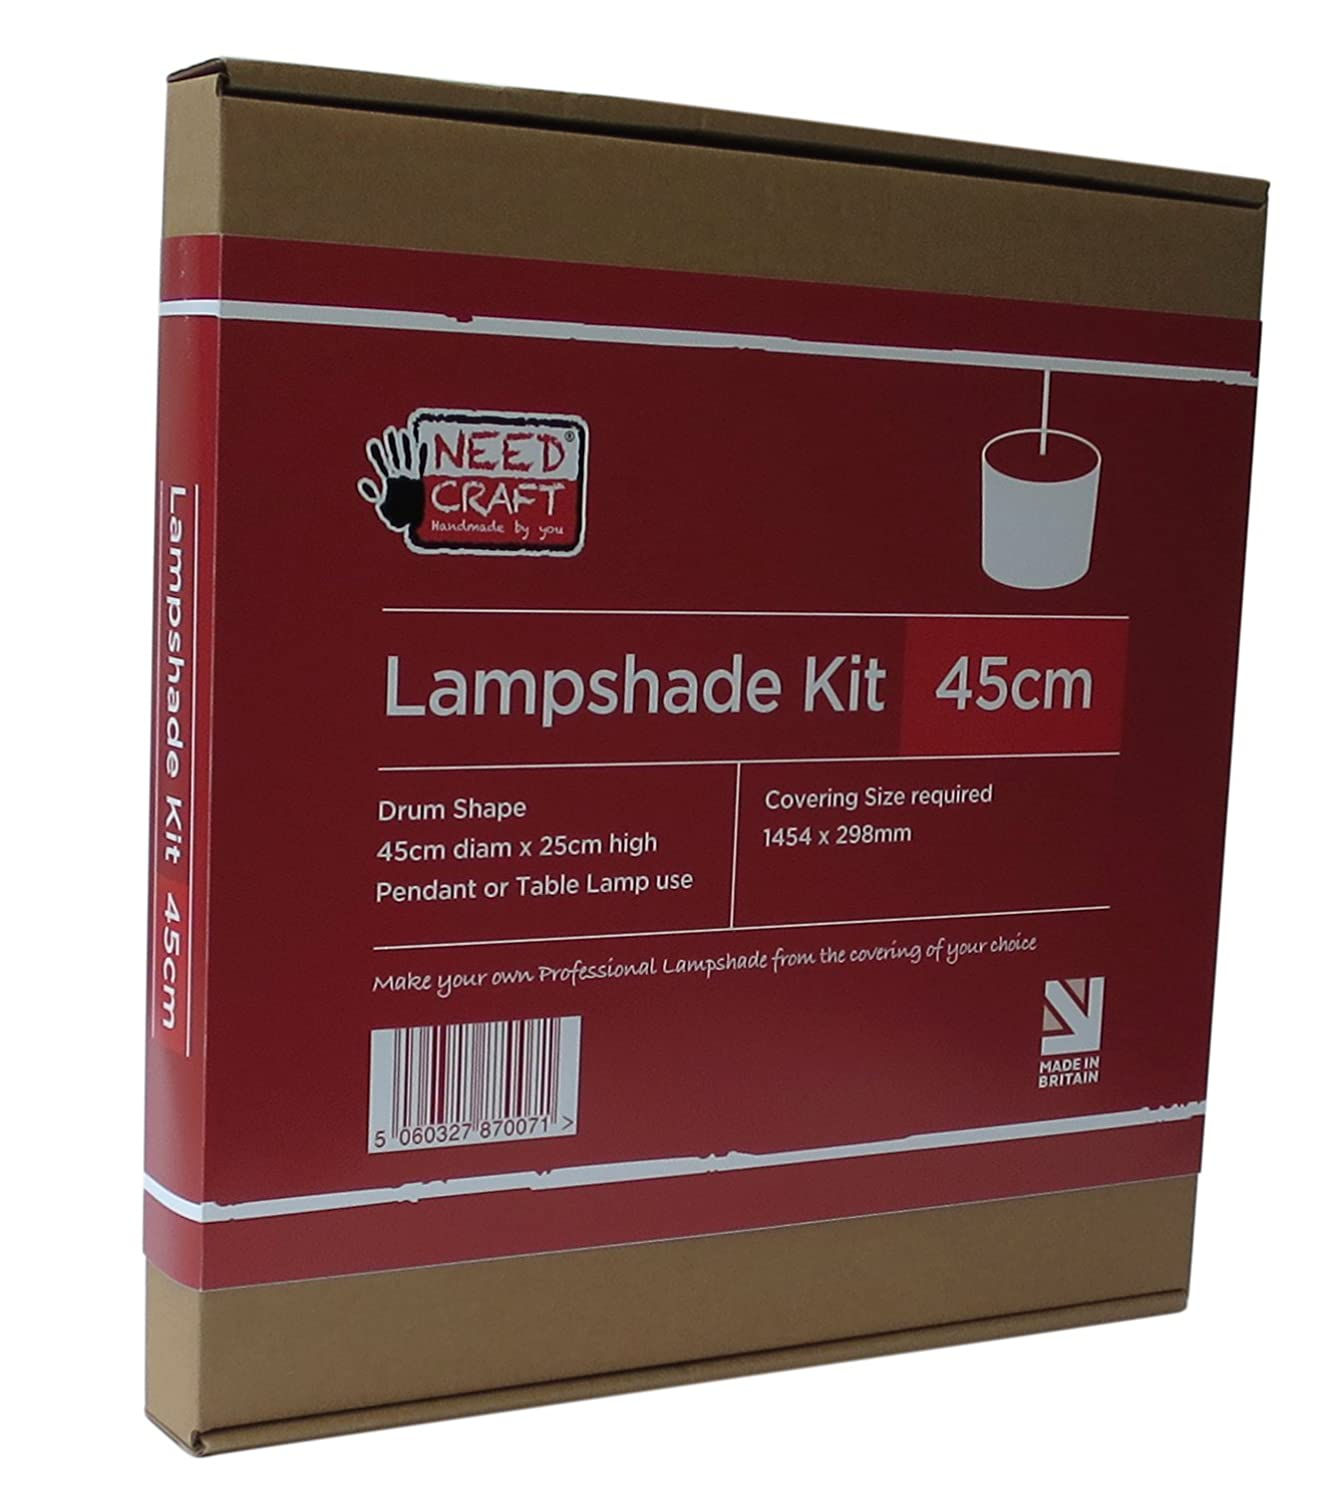 Make your own craft table - 45cm Lampshade Making Kit For Pendants Table Or Floor Lamps Amazon Co Uk Lighting